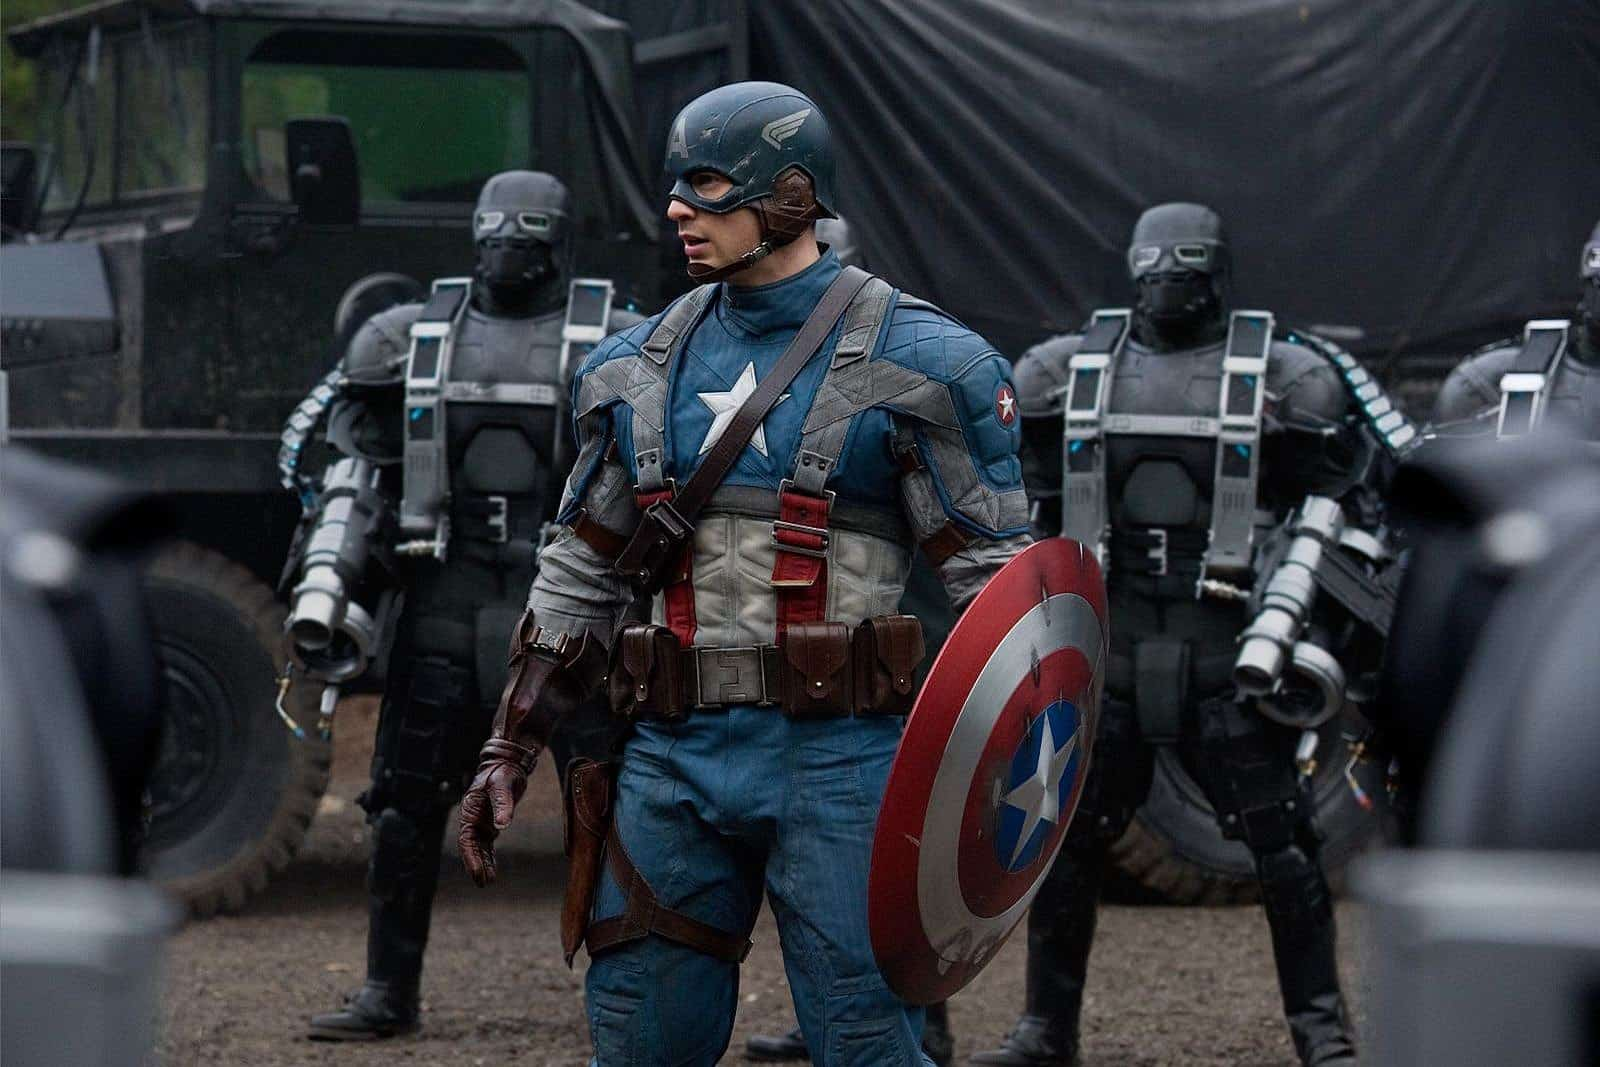 Captain America: The First Avenger who owns captain america the government smithsonian steve rogers john walker sam wilson the falcon and the winter soldier escape from the law legal rights ownership trademark copyright shield symbol title